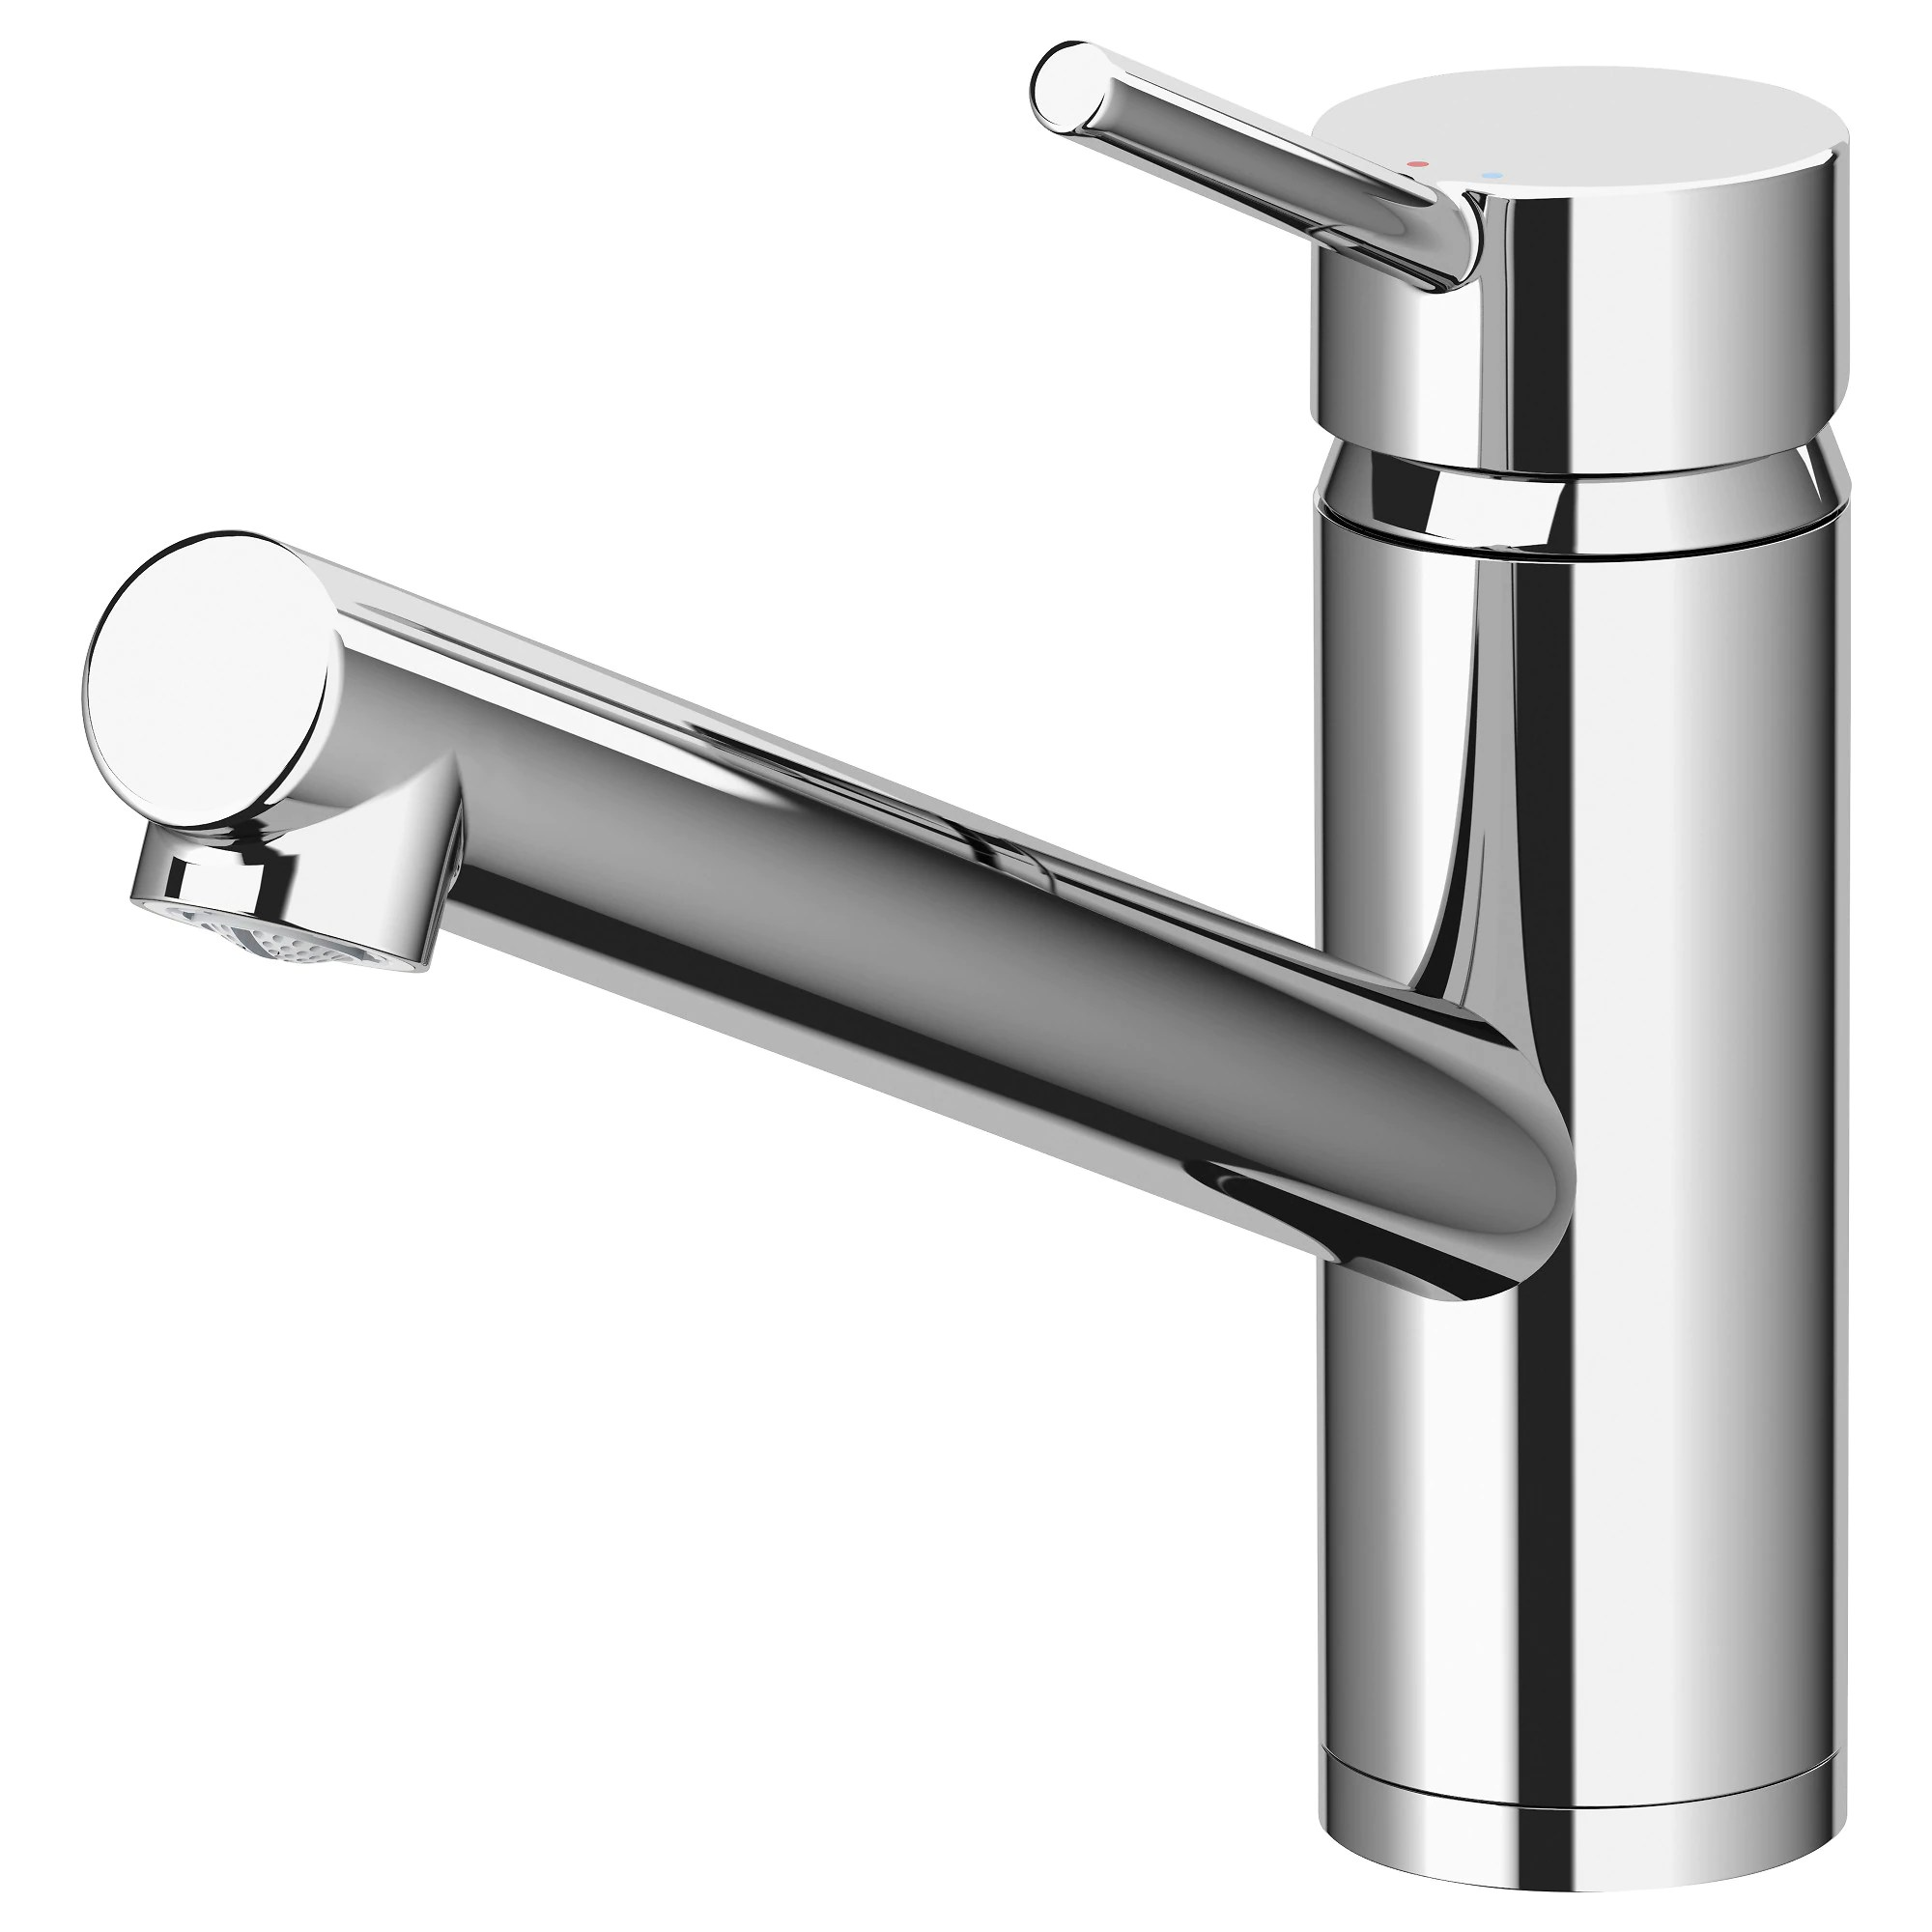 kitchen sink faucet YTTRAN kitchen faucet chrome plated Height 7